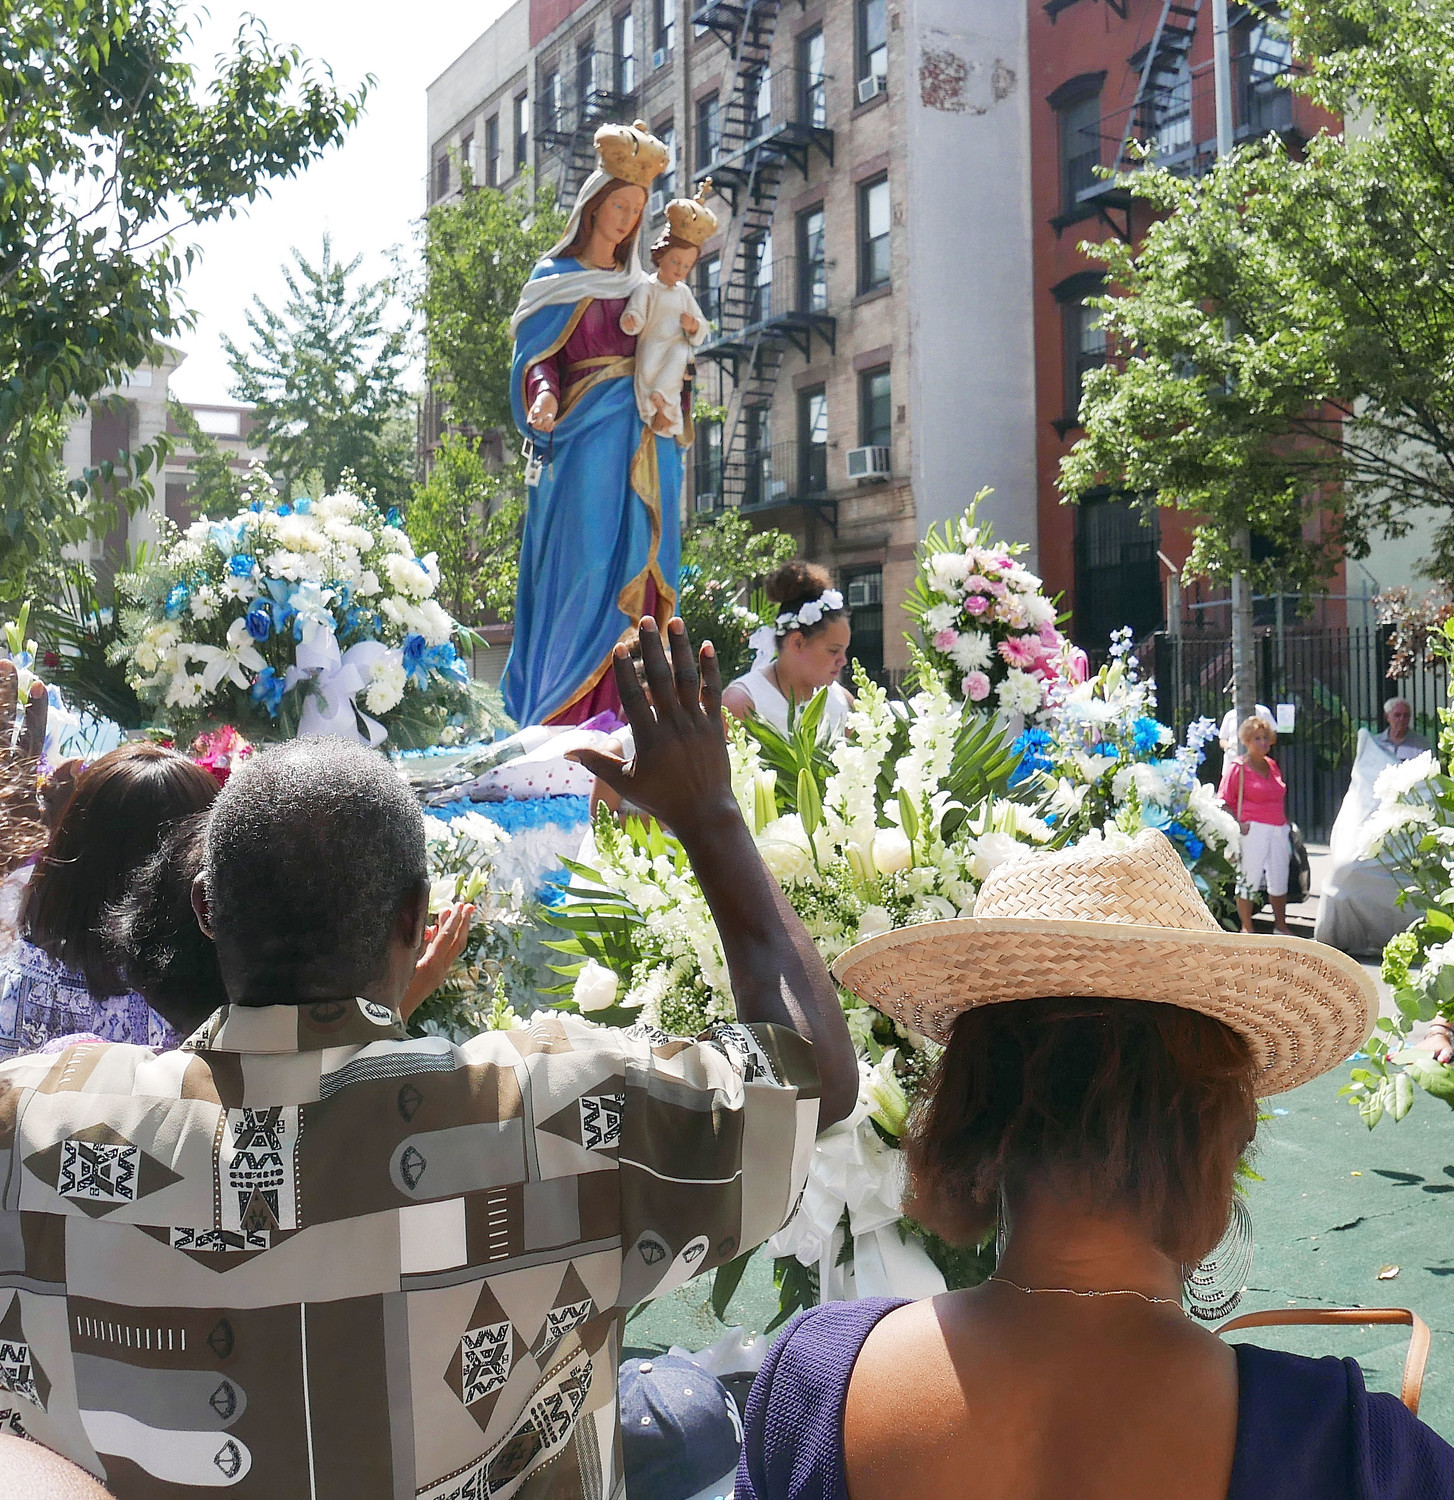 People acknowledge the statue of Our Lady of Mount Carmel during the street procession in East Harlem following the solemn Mass.